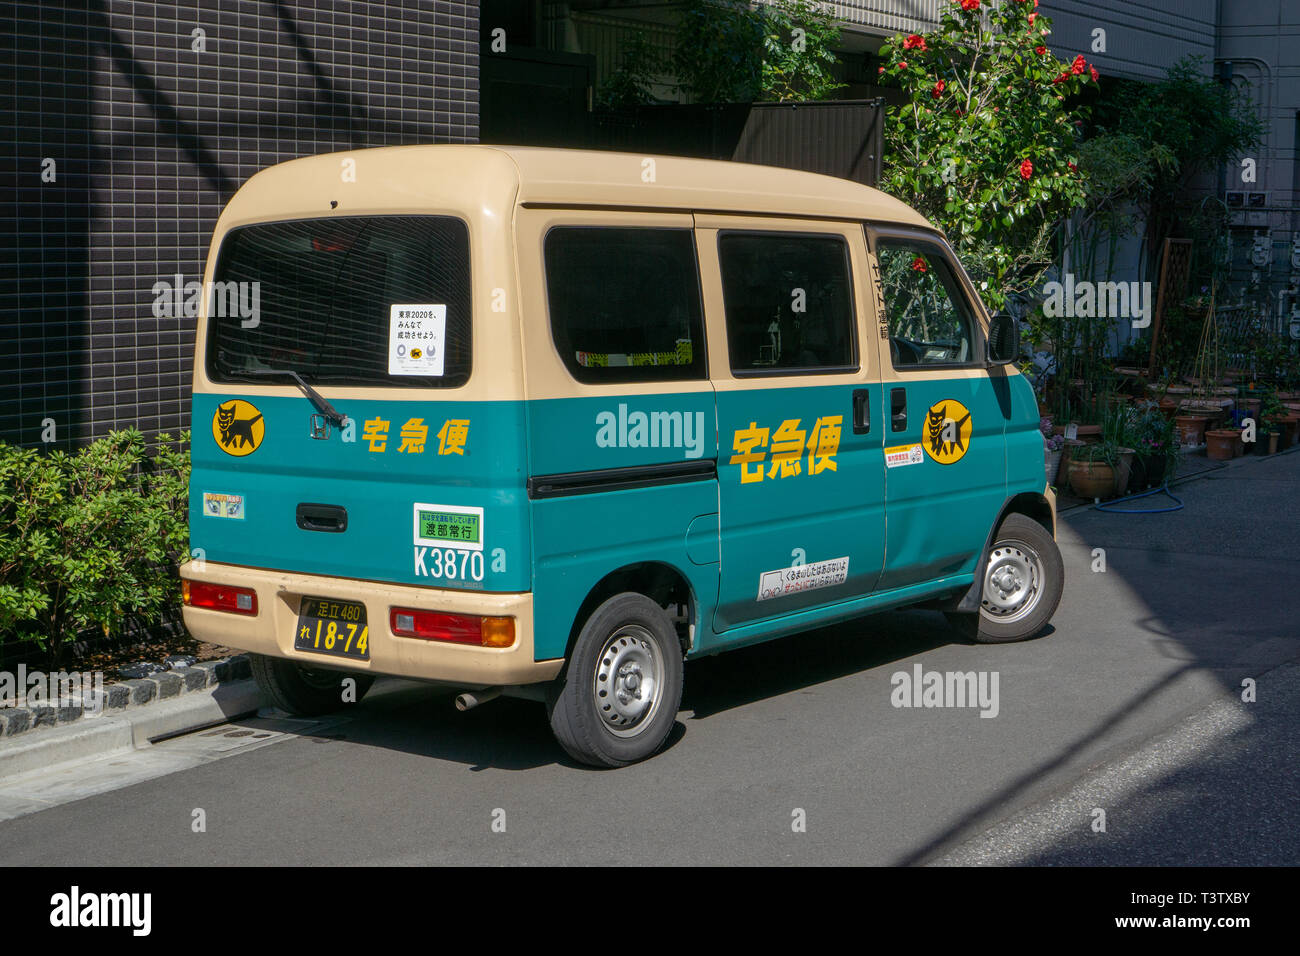 I spotted this cool minivan on one of my walks around less touristy area of Asakusa in Tokyo. - Stock Image